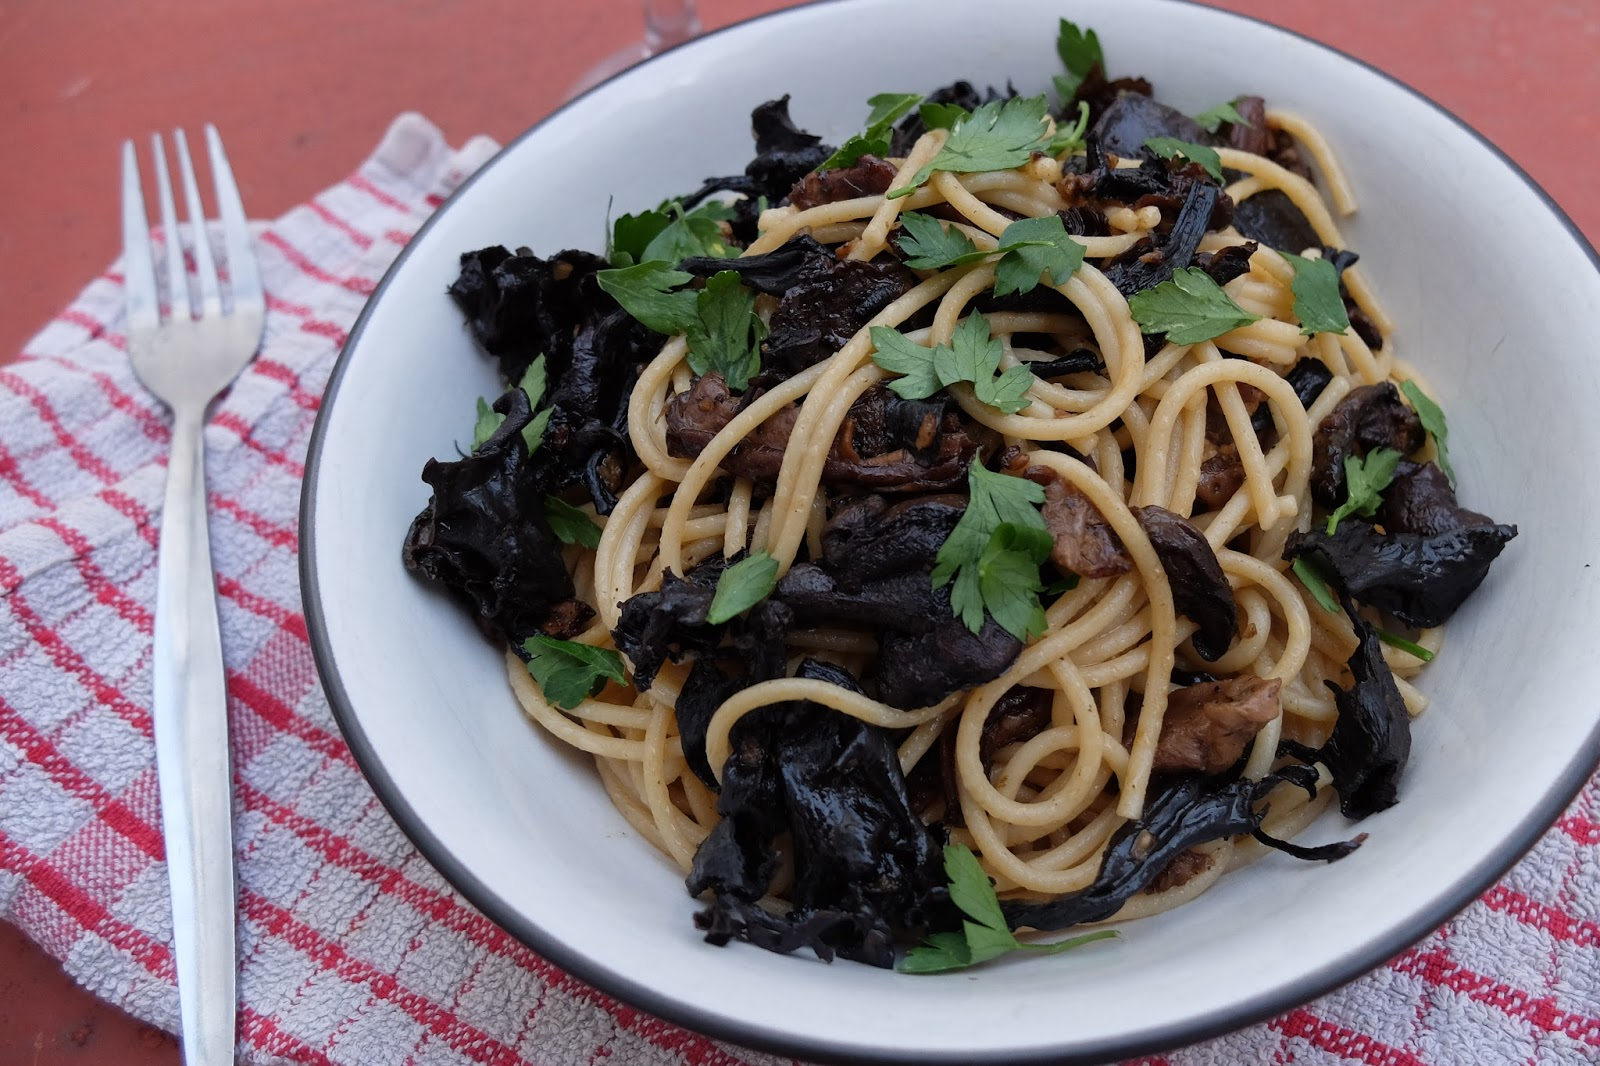 Jamie Oliver Life Saving Meals Twist Wild Mushroom Spaghetti In Garlic Butter